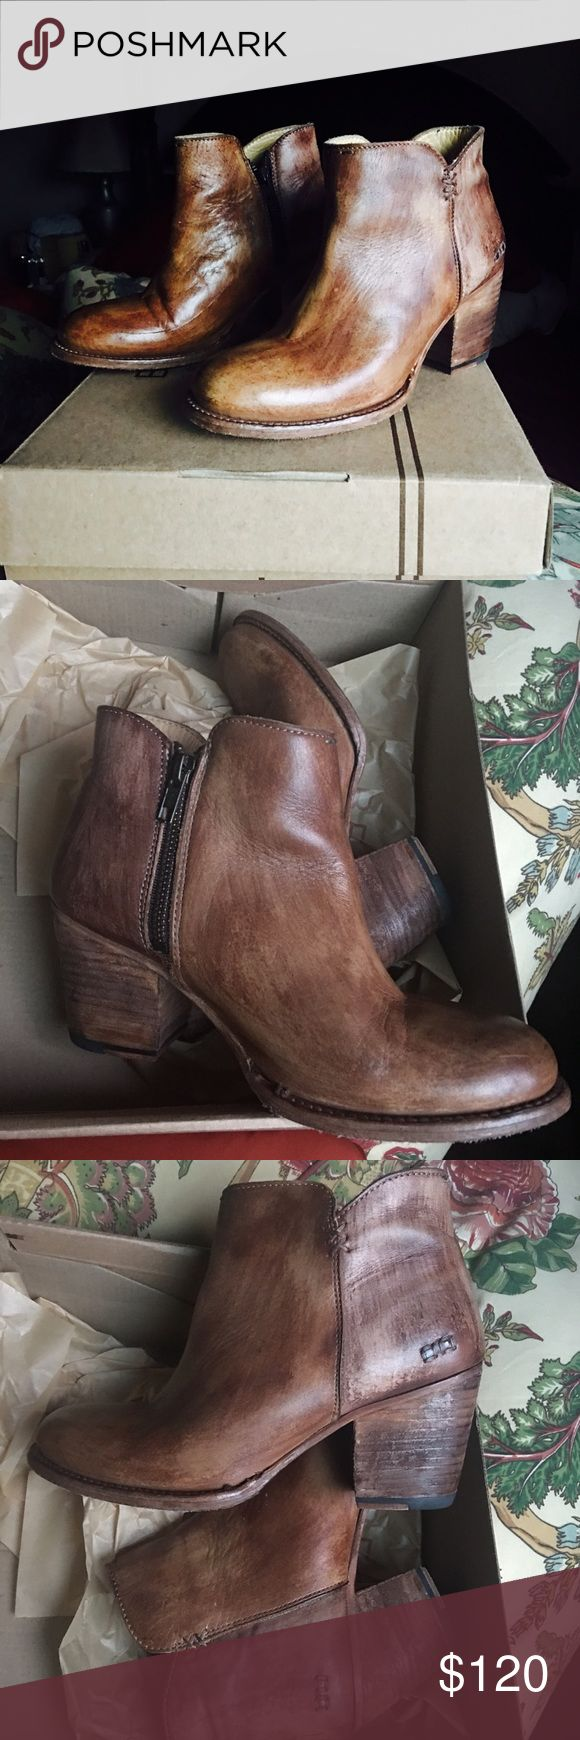 Bed Stu Yell driftwood ankle boots size 7.5 Tan leather, Bed Stu has amazing boots! Great quality Bed Stu Shoes Ankle Boots & Booties